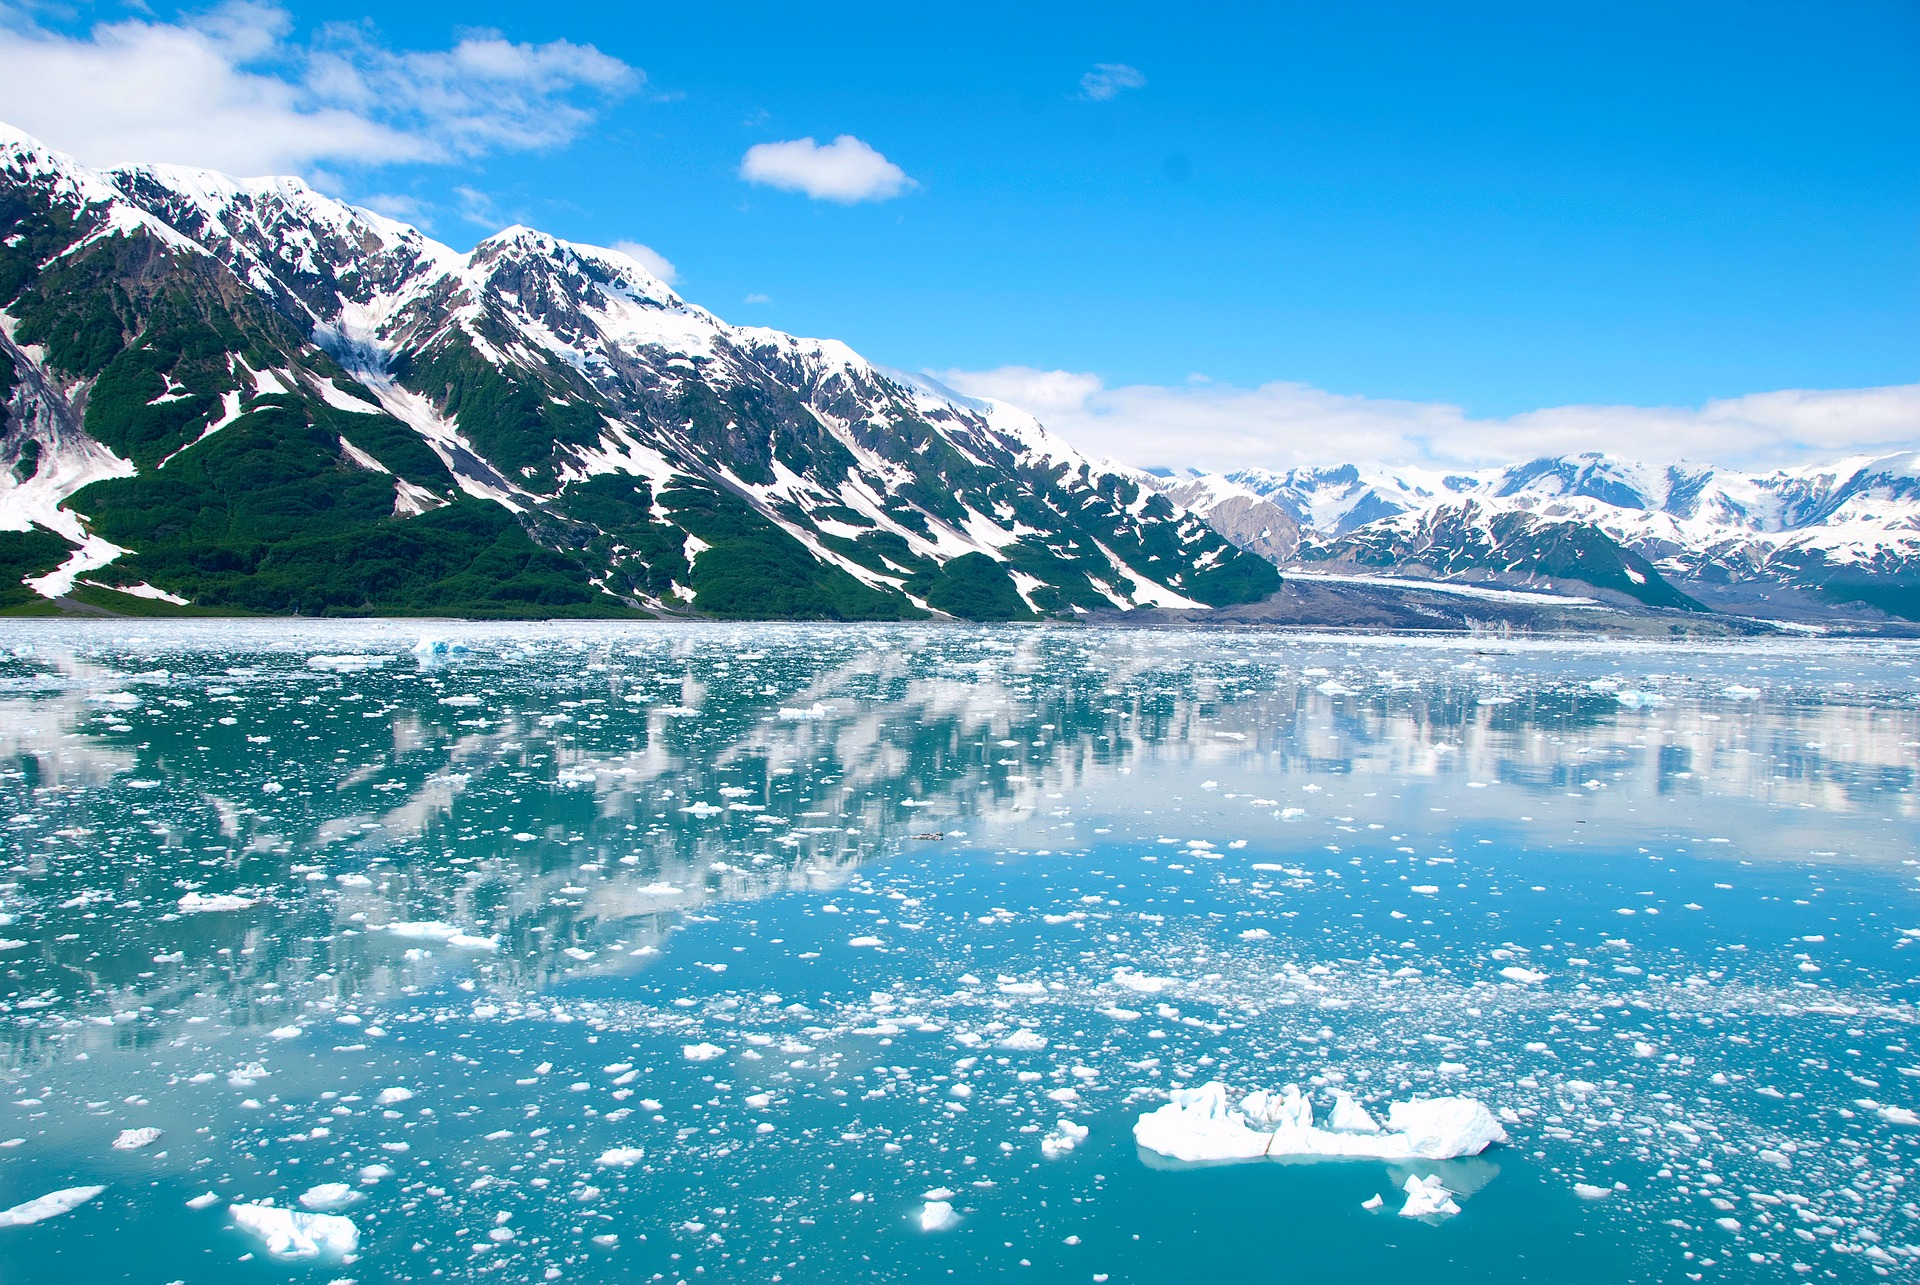 Alaska - splendid winter landscape. Discover the 10 Best Winter Vacation spots in the United States in this article. #usa #usawinter #winterusa